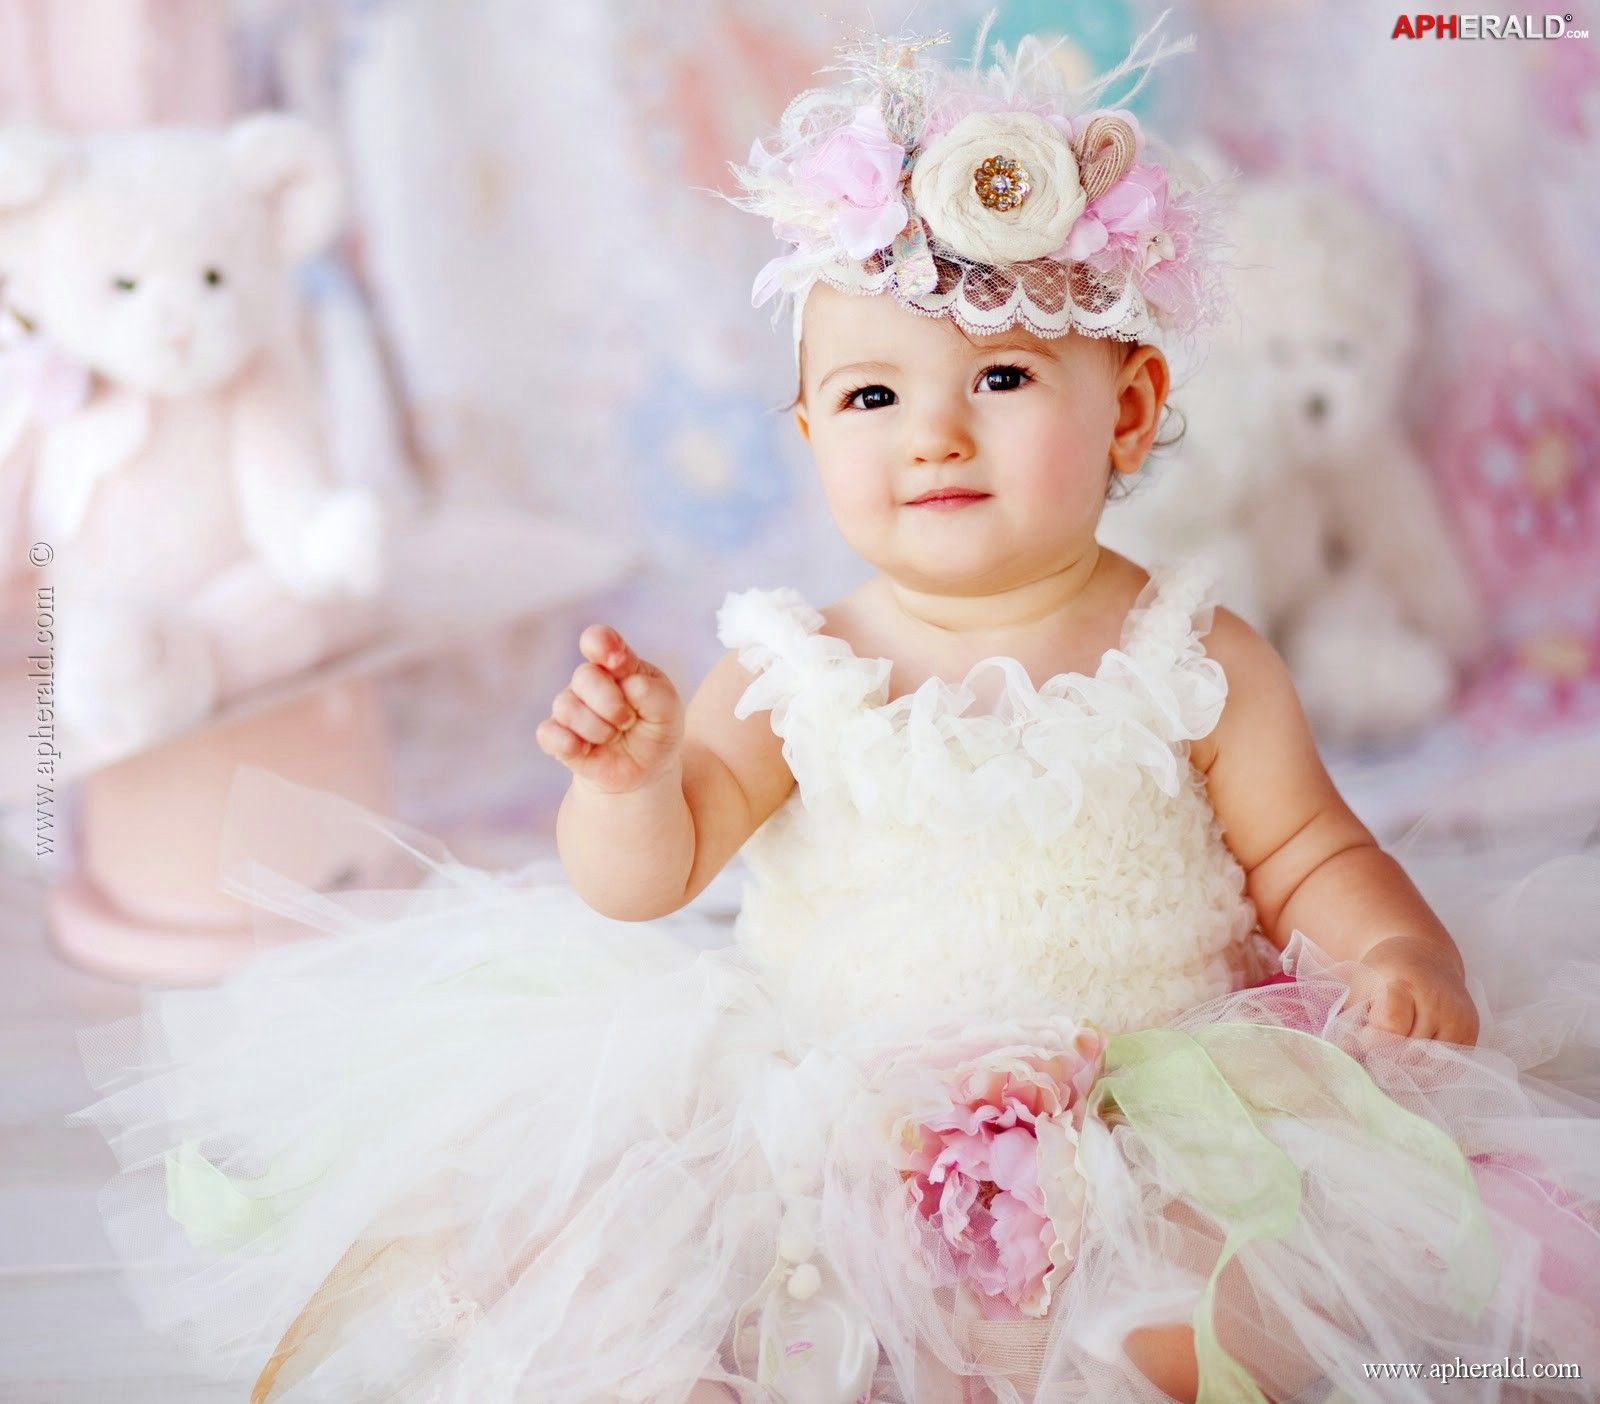 A Baby In Princess Outfit Baby Girl Wallpaper Cute Baby Girl Wallpaper Baby Girl Images